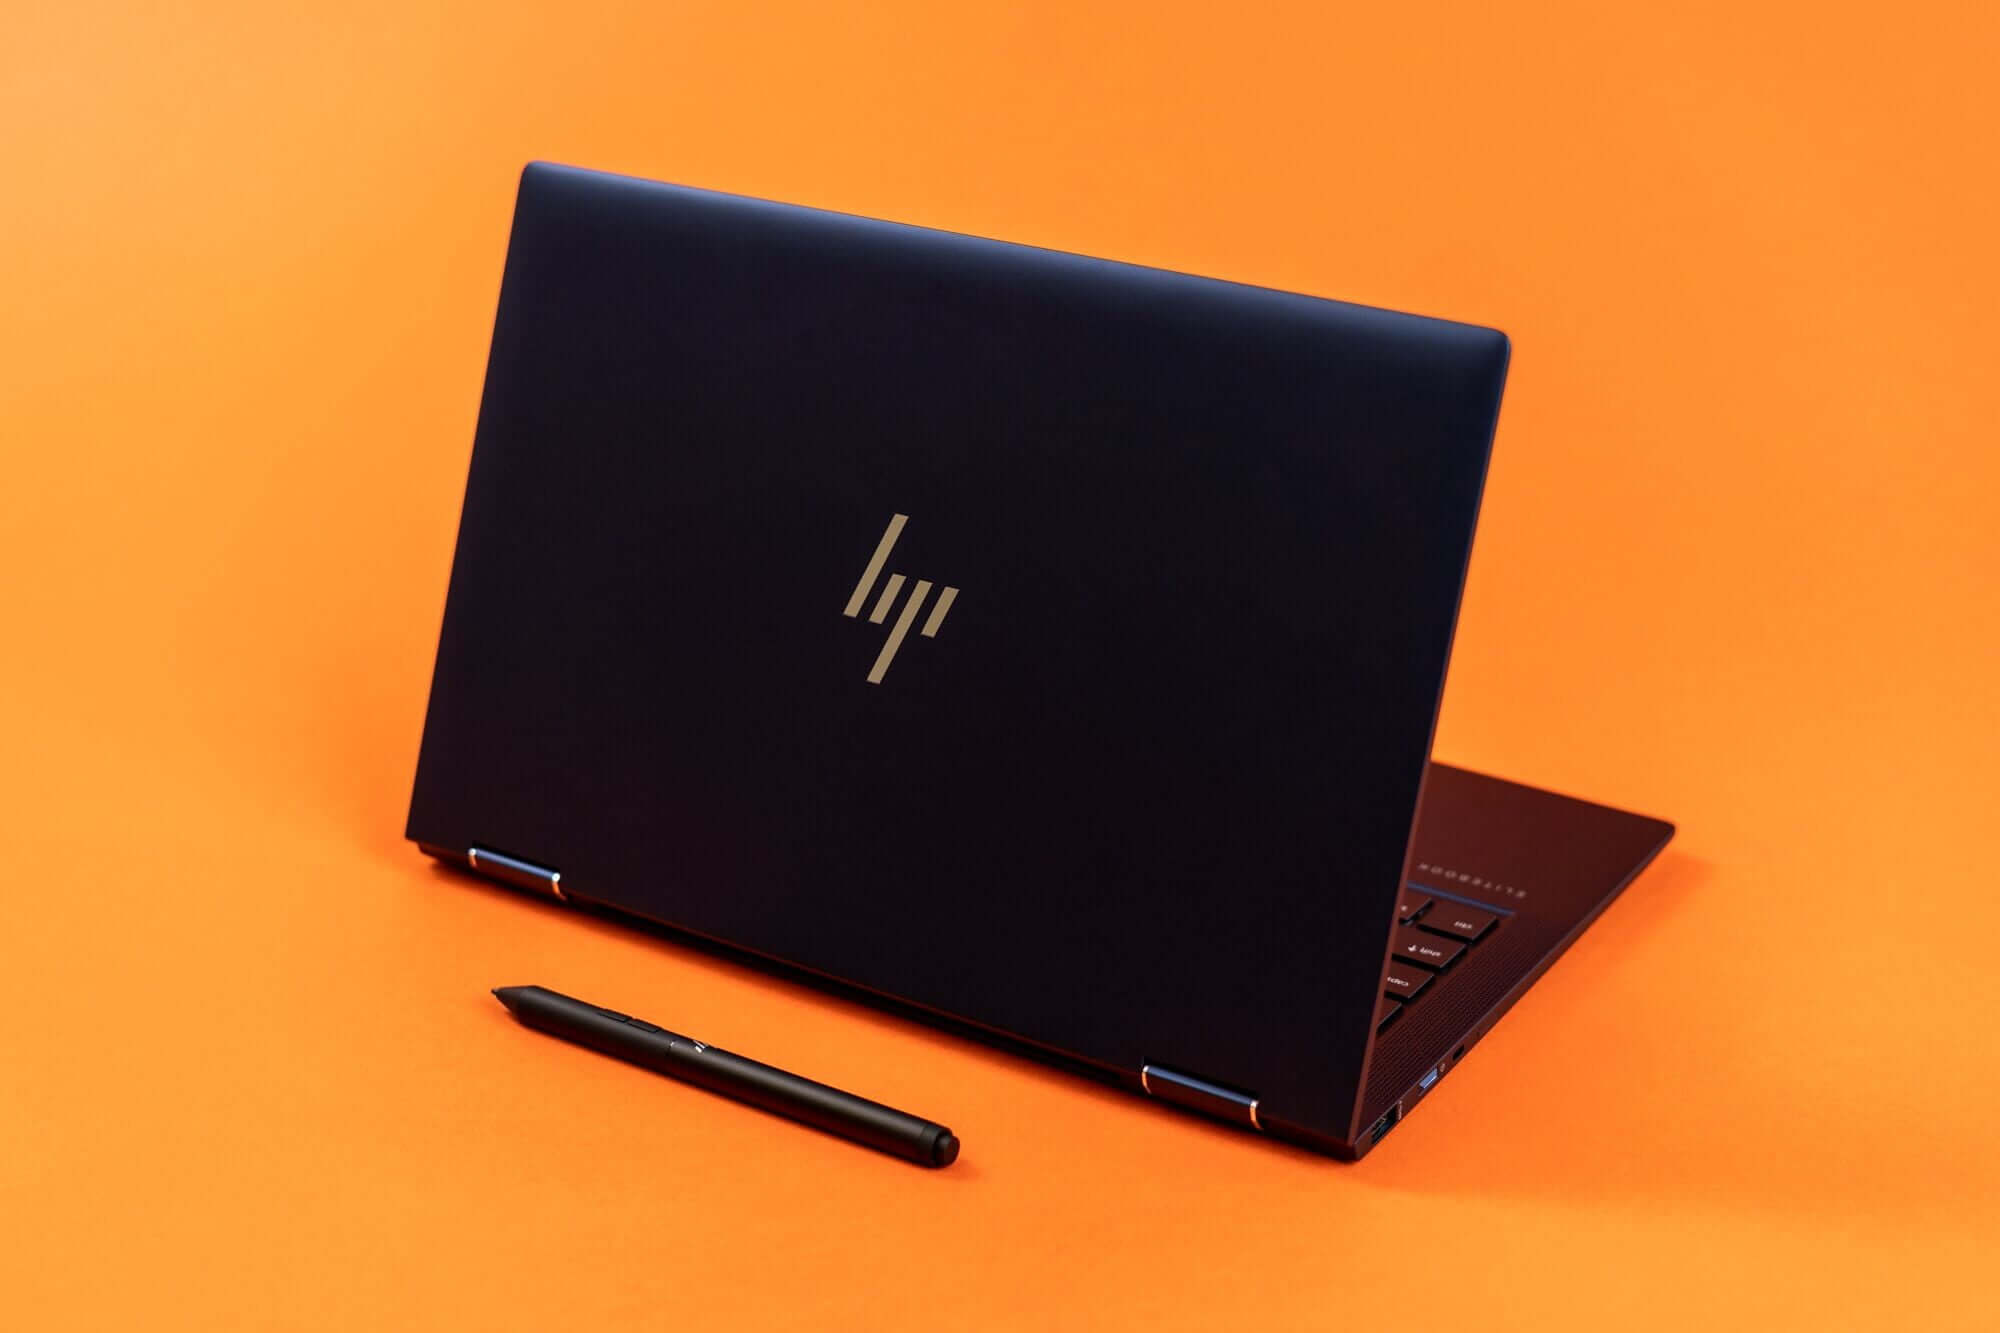 HP Elite Dragonfly - Best Laptops for Office Work